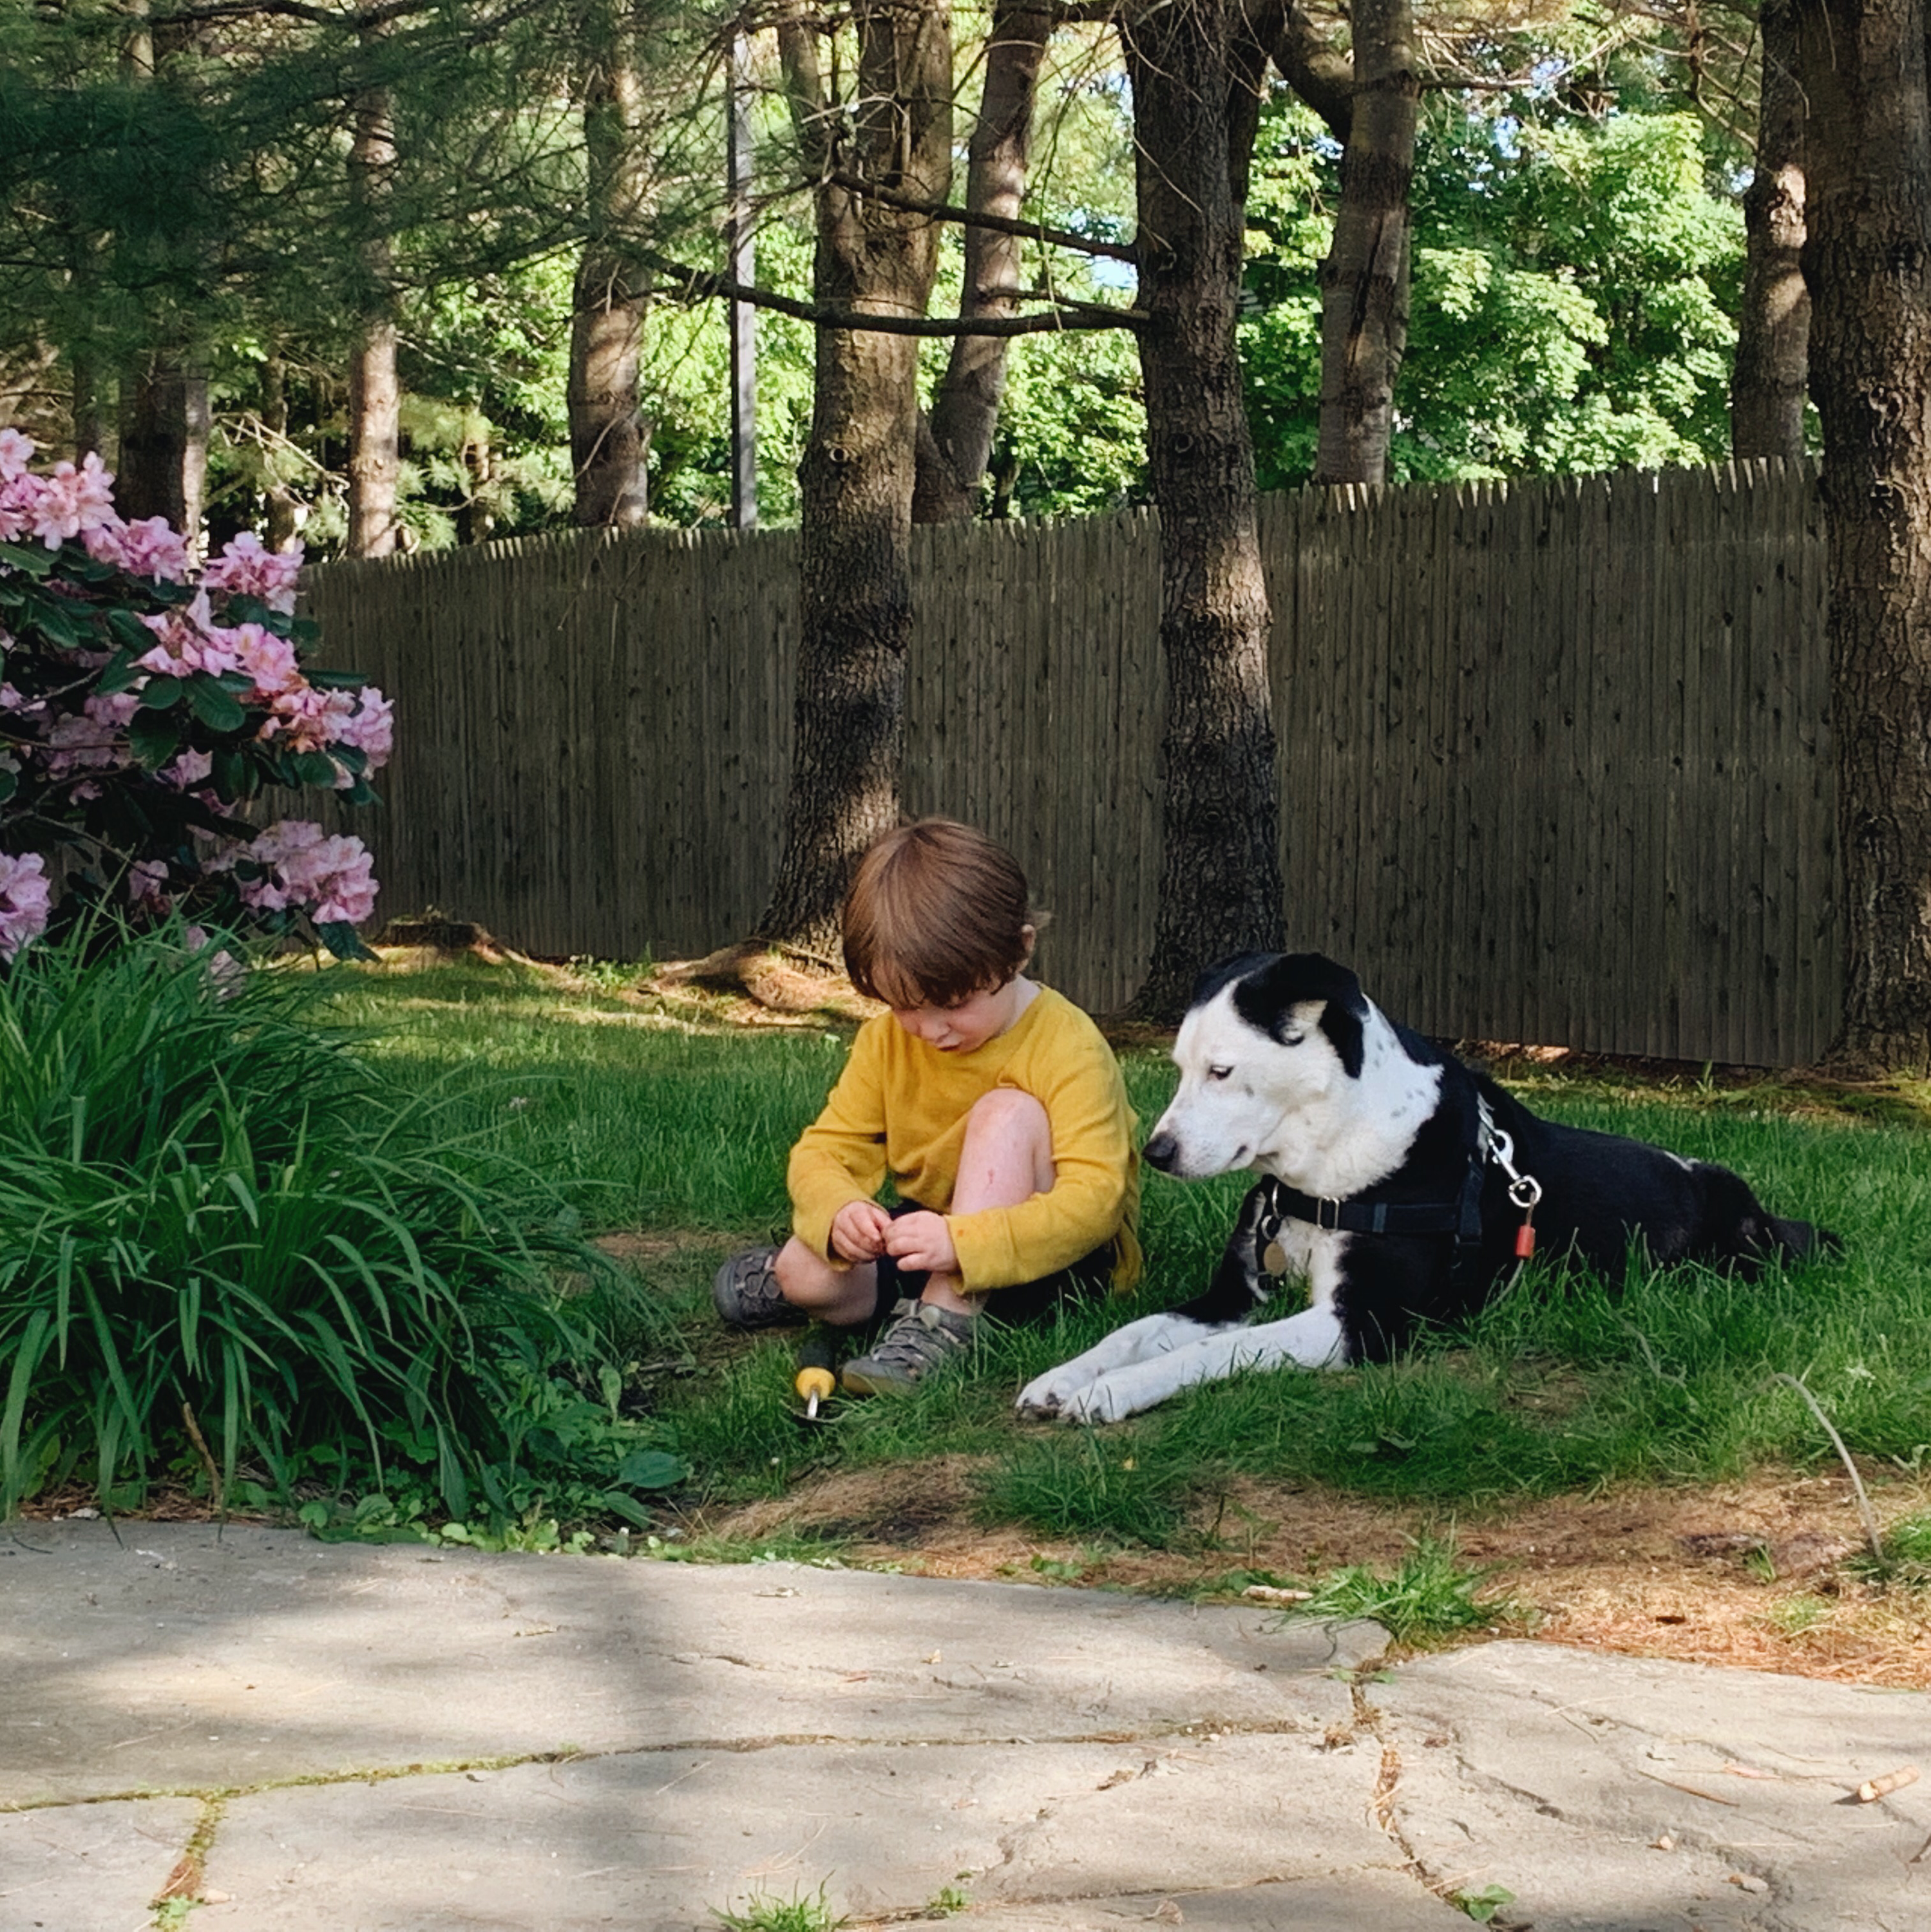 Young child sits in the grass with a black and white dog.